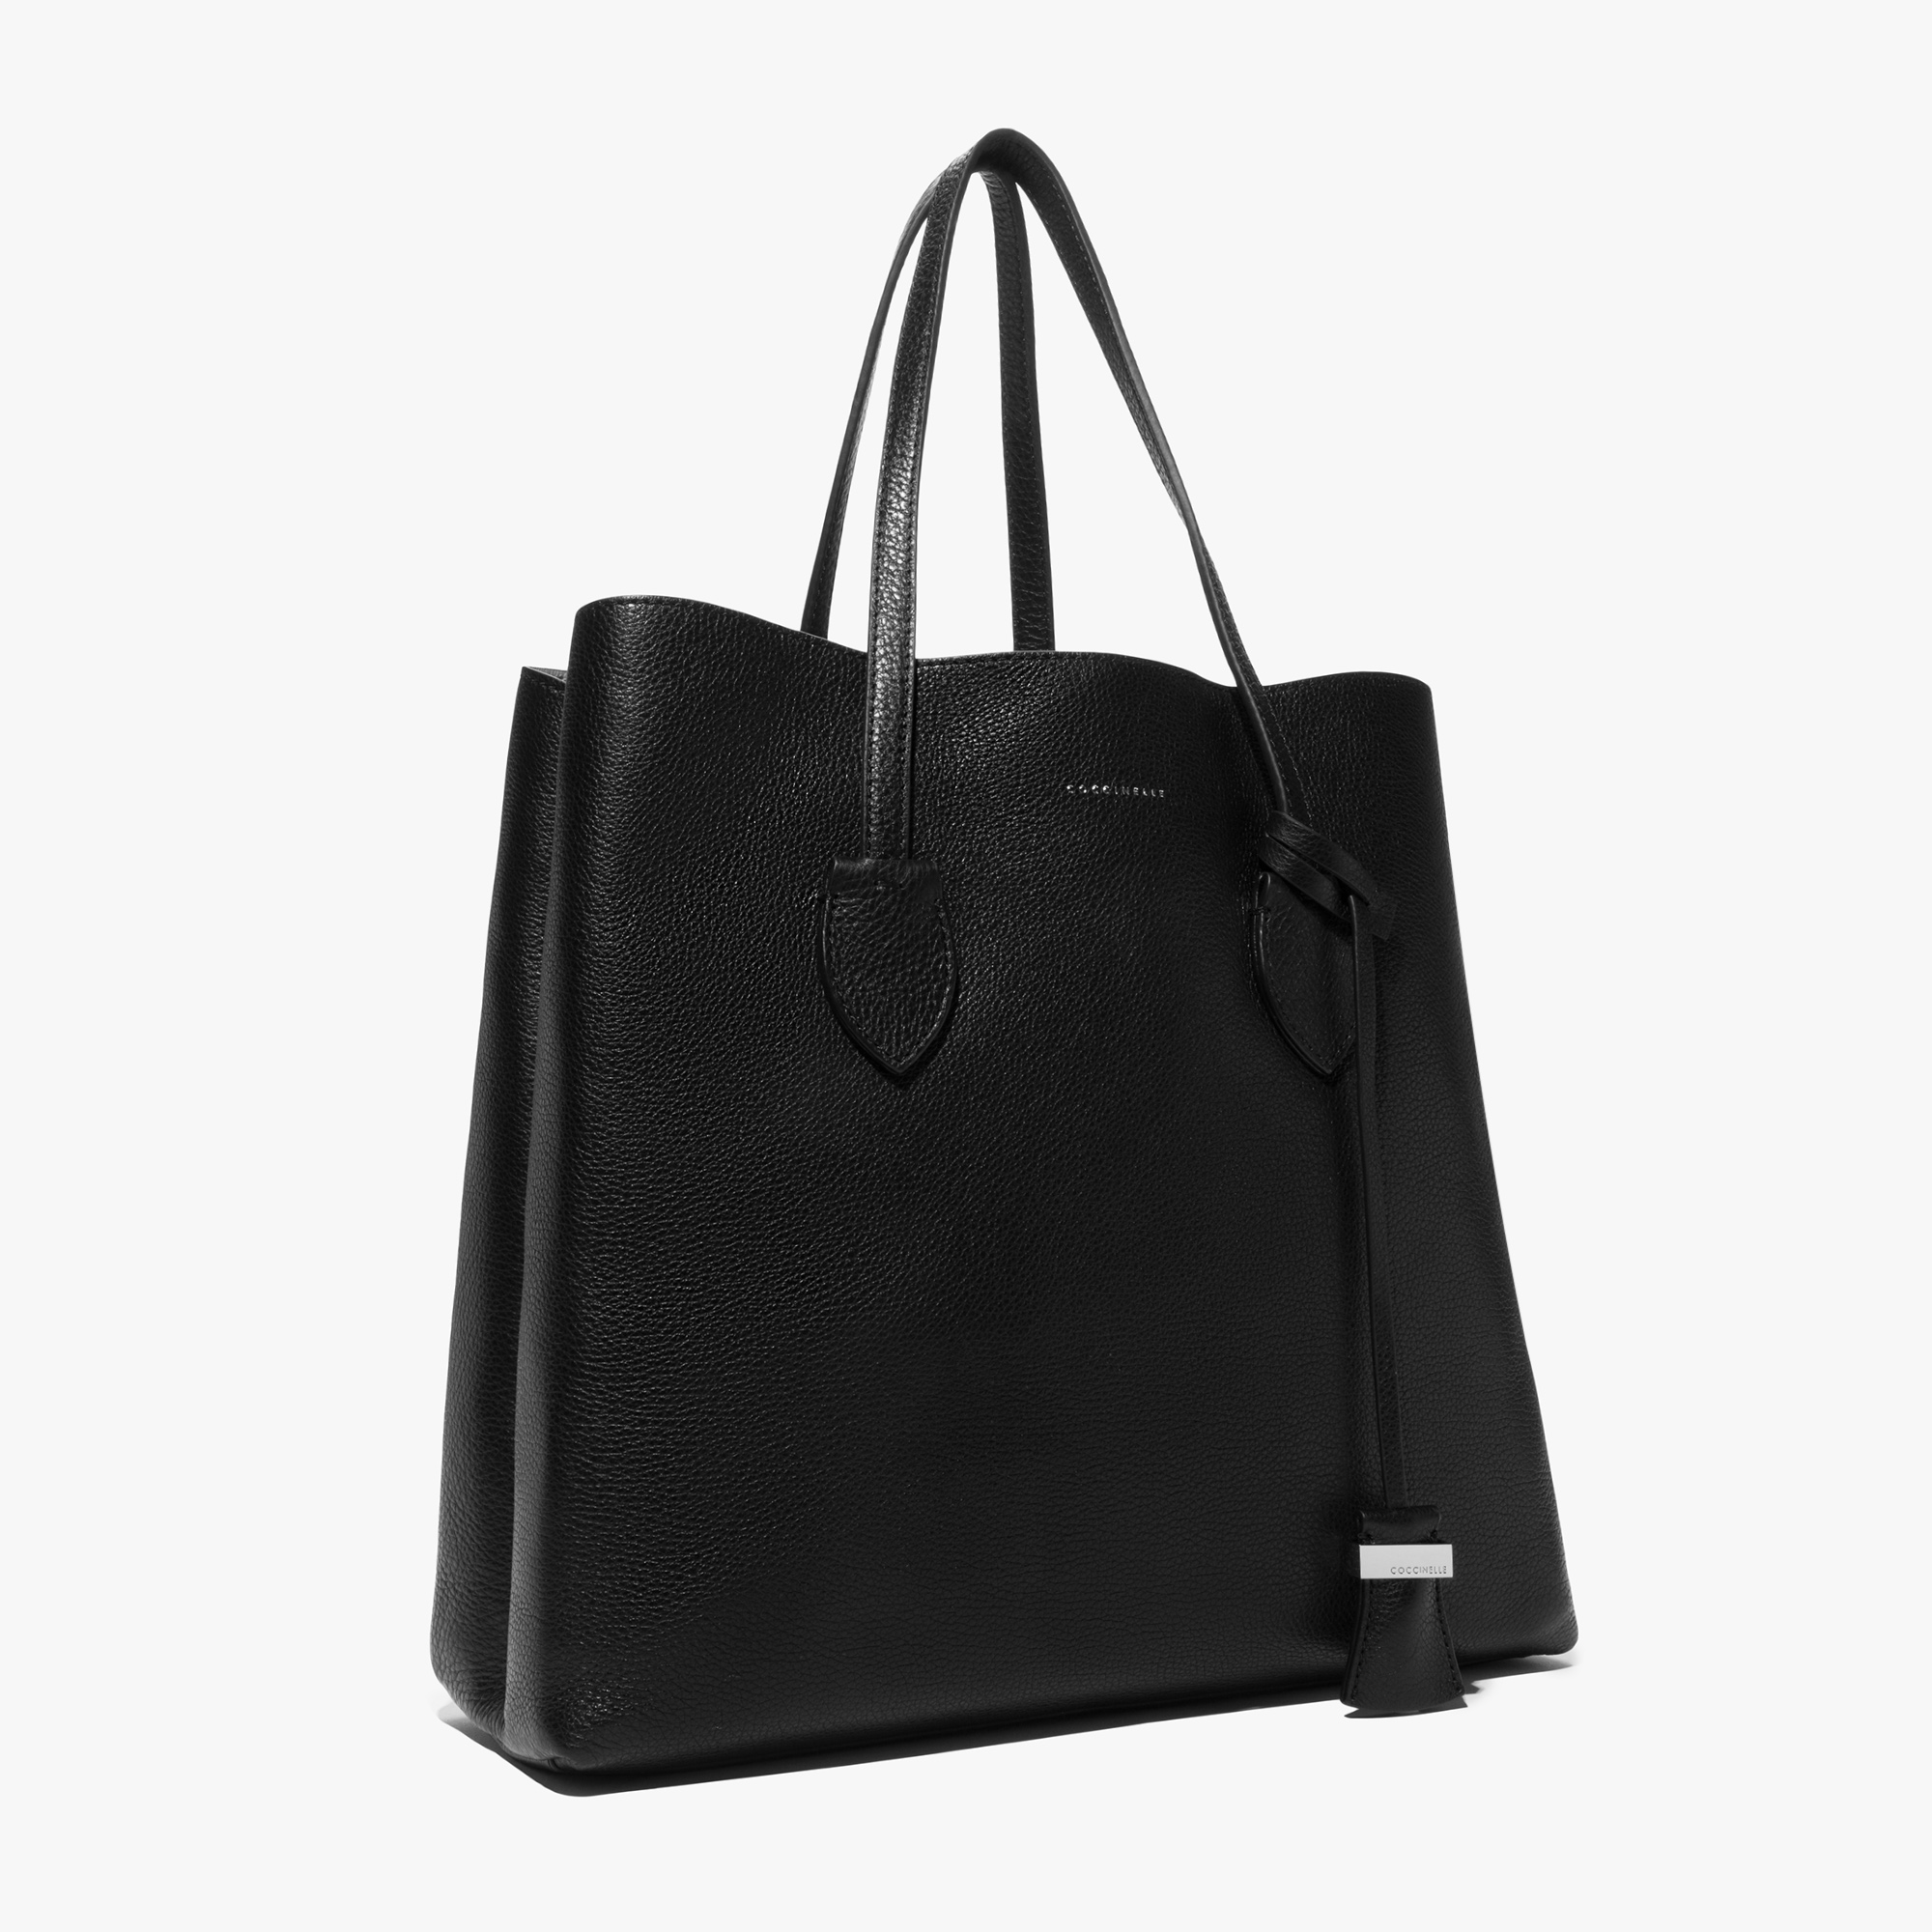 Coccinelle Celene leather shopping tote